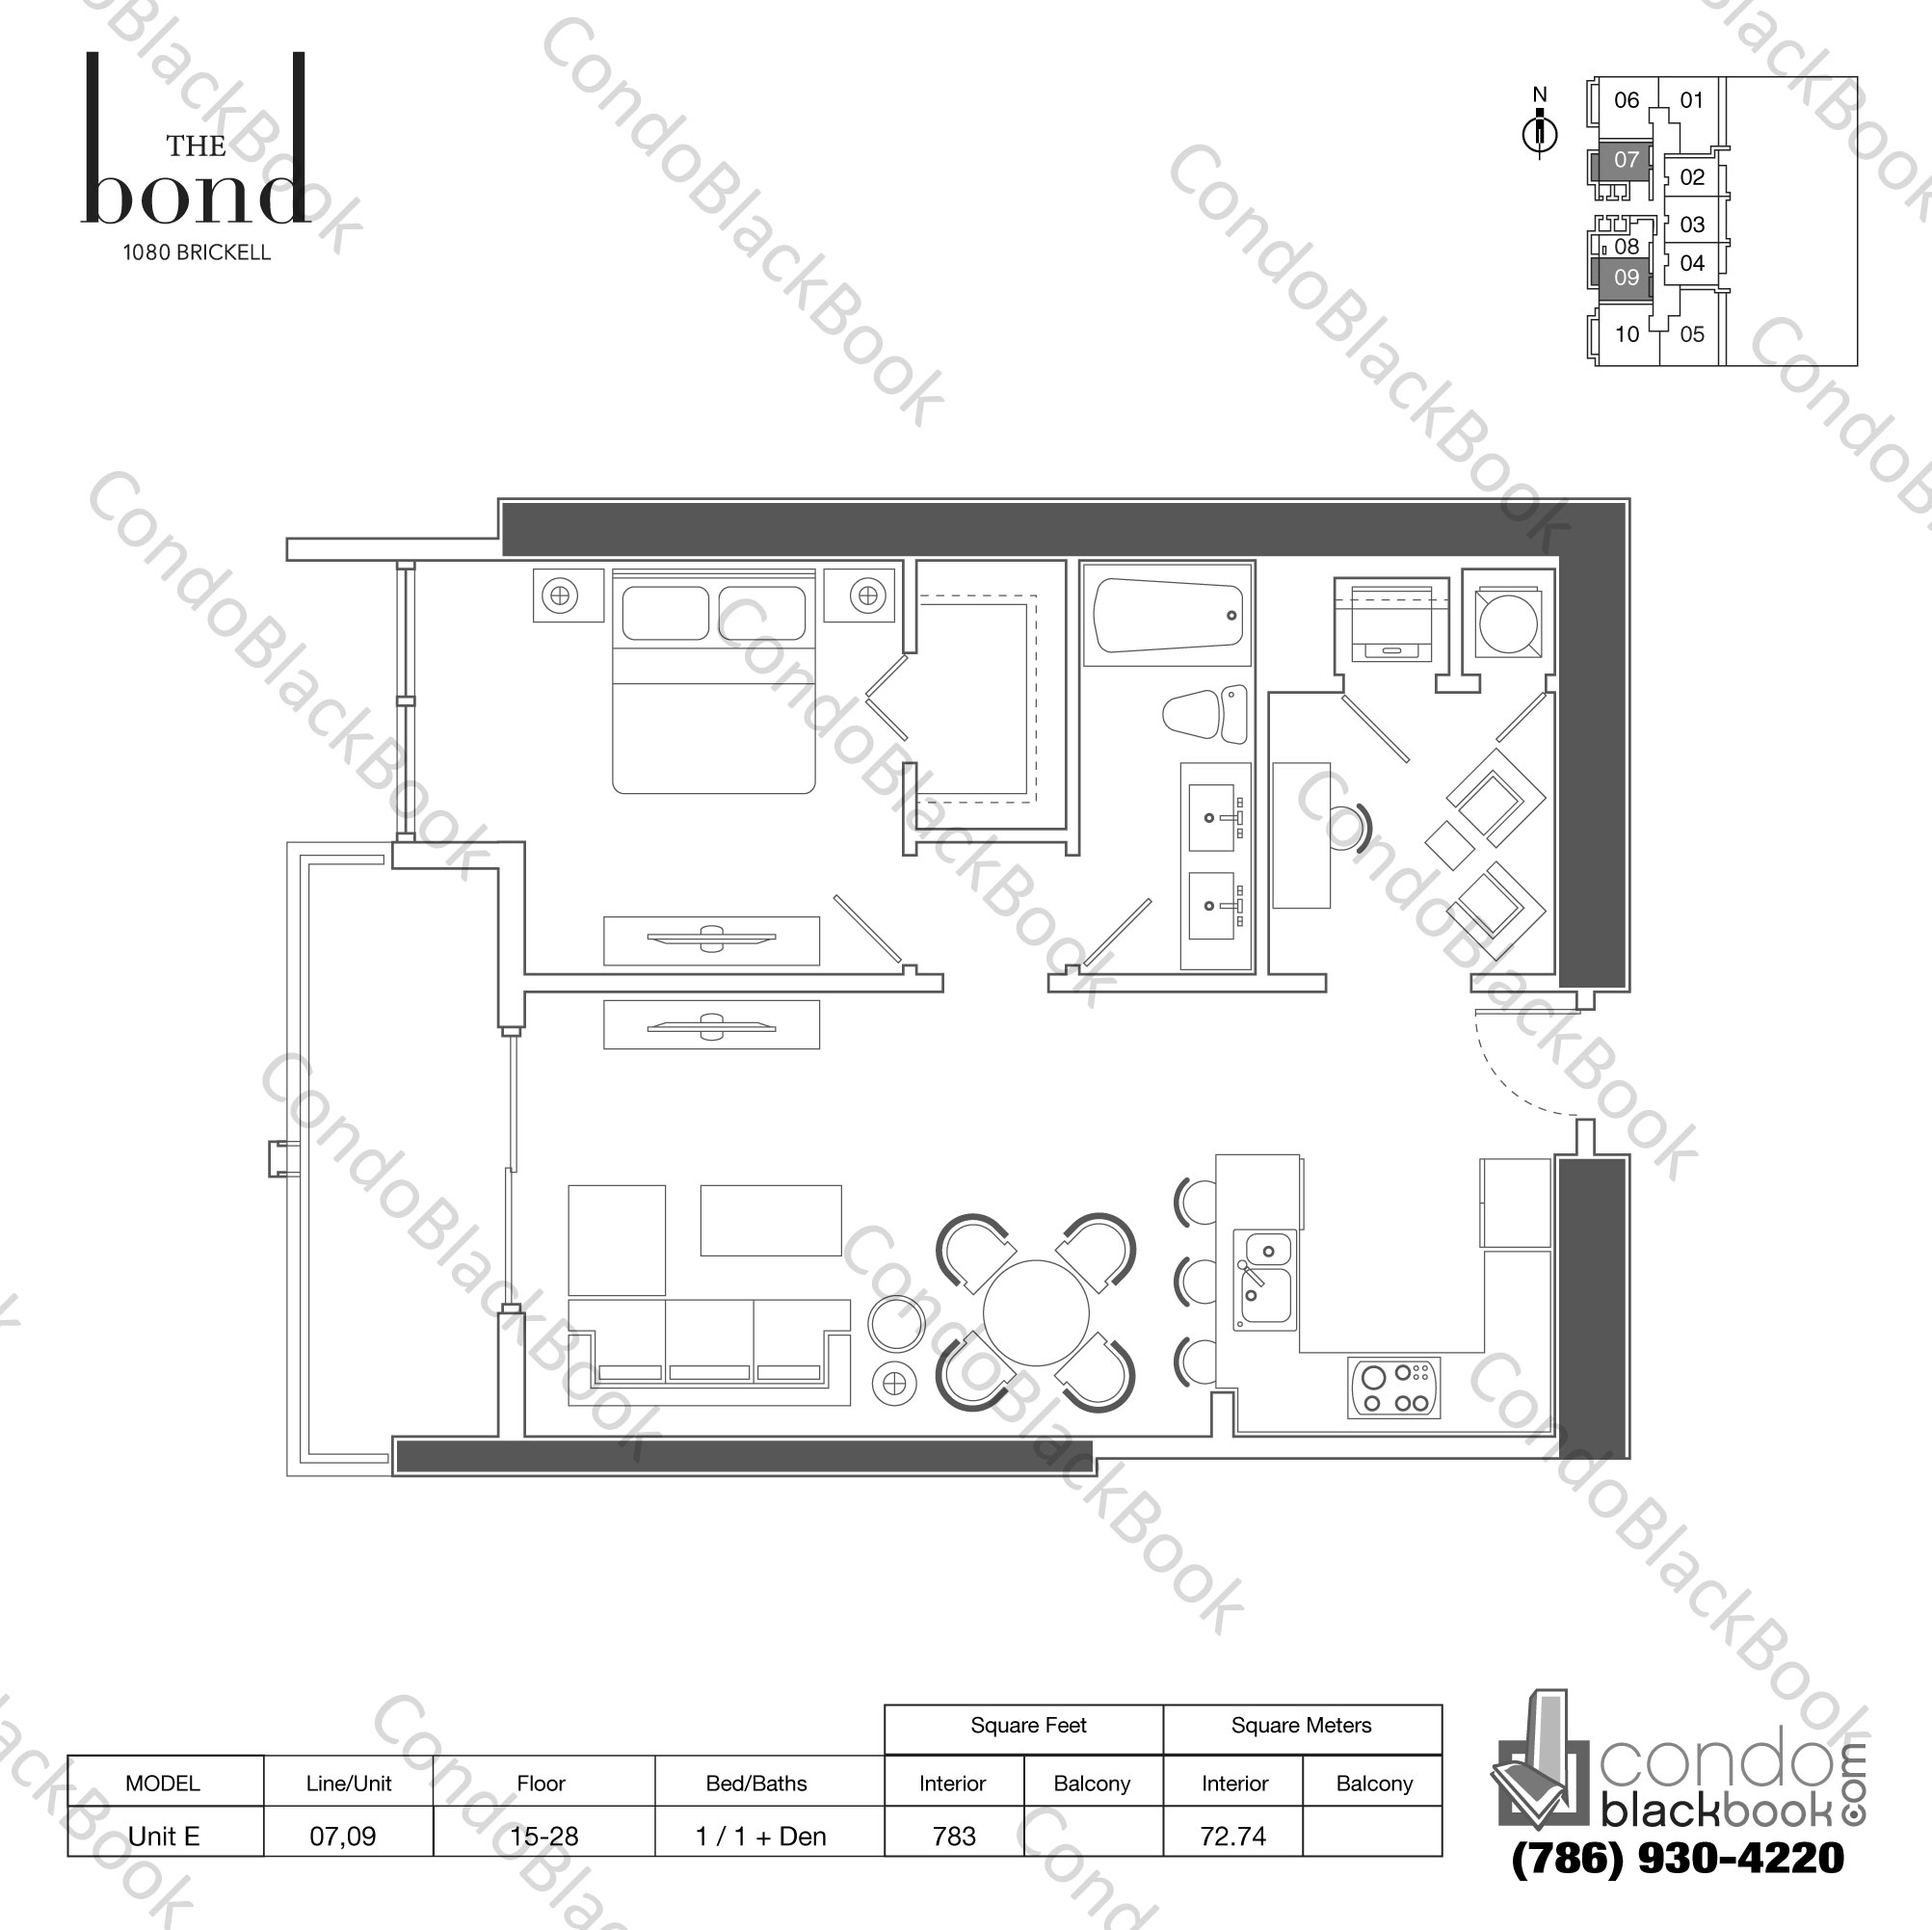 Floor plan for The Bond Brickell Miami, model UNIT E, line -, 1+Den/1 bedrooms, 783 sq ft